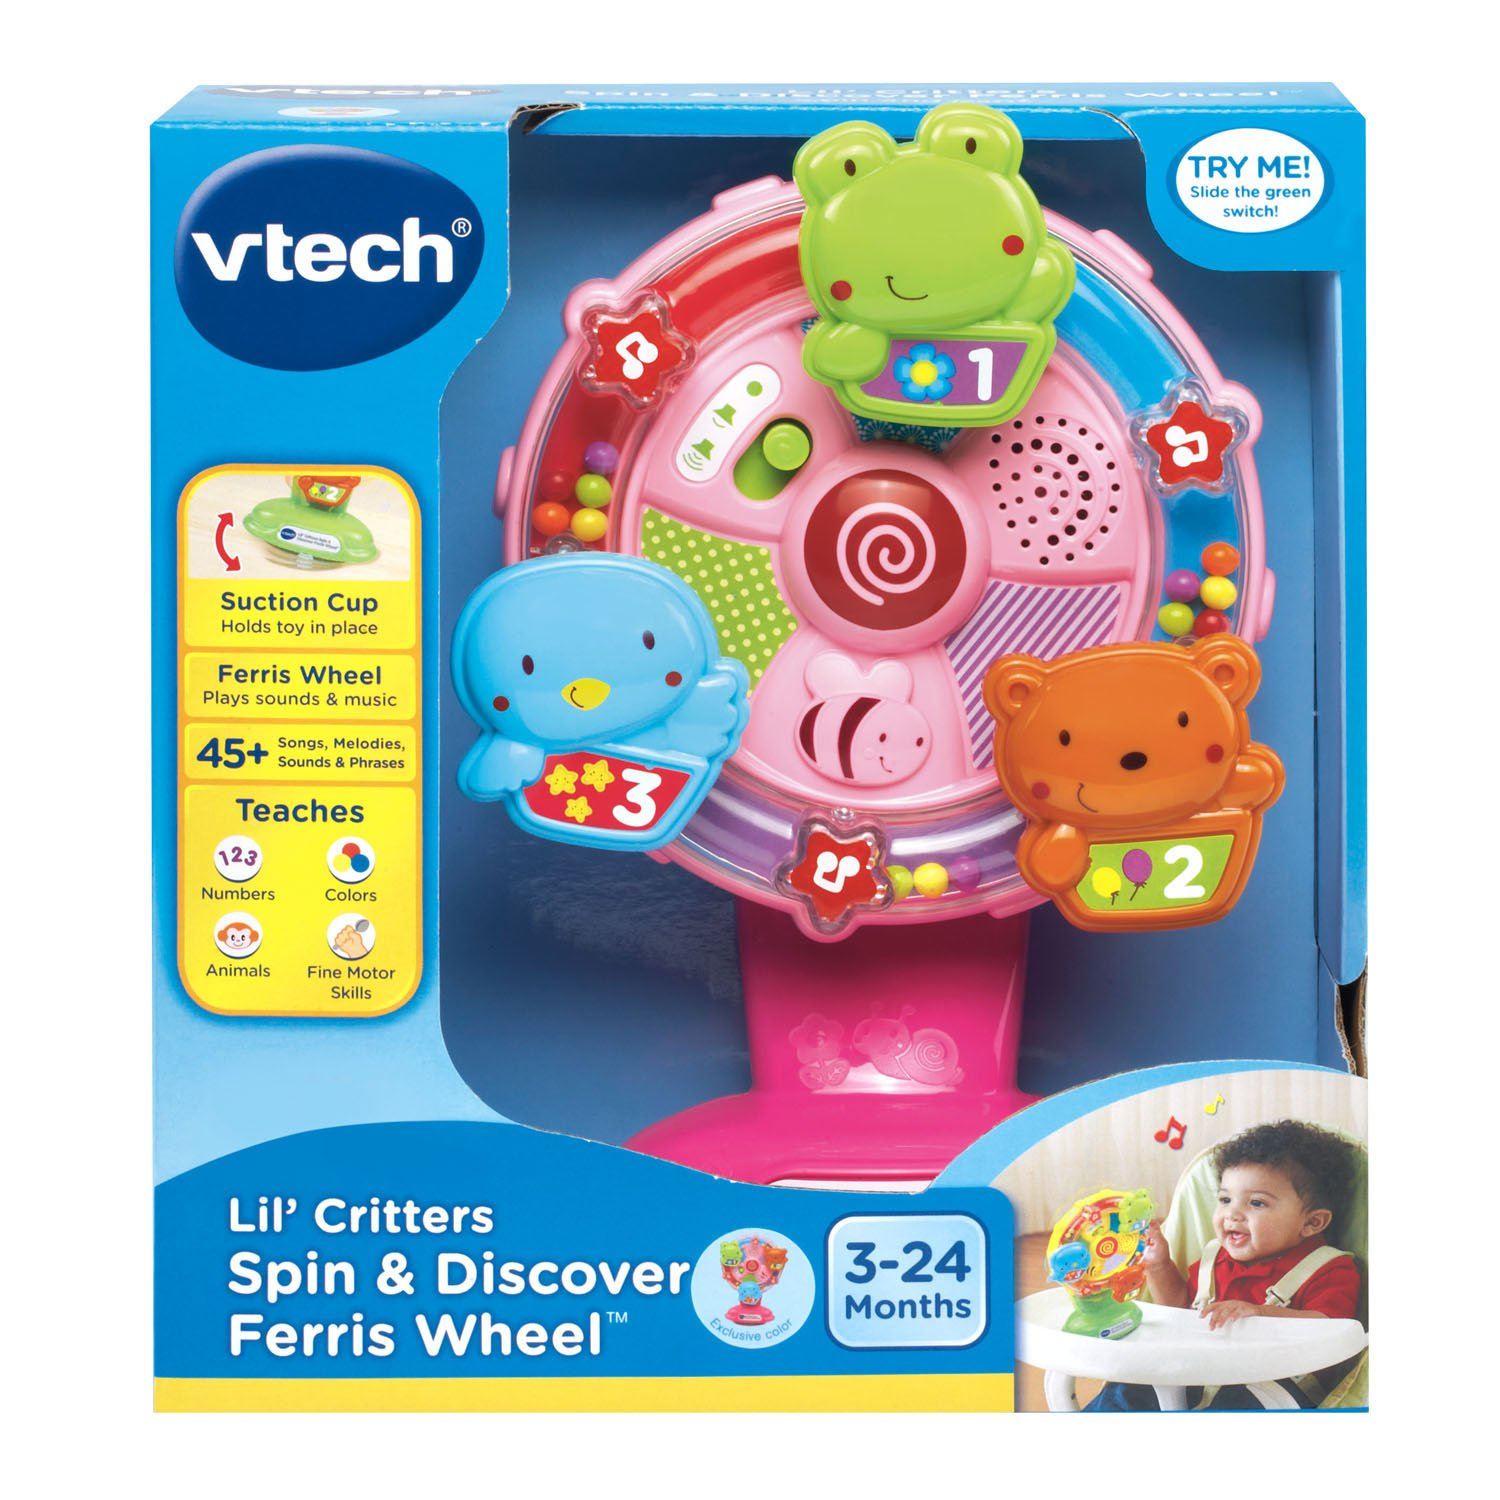 VTech Lil' Critters Spin and Discover Ferris Wheels, Pink (Amazon Exclusive) by VTech (Image #6)